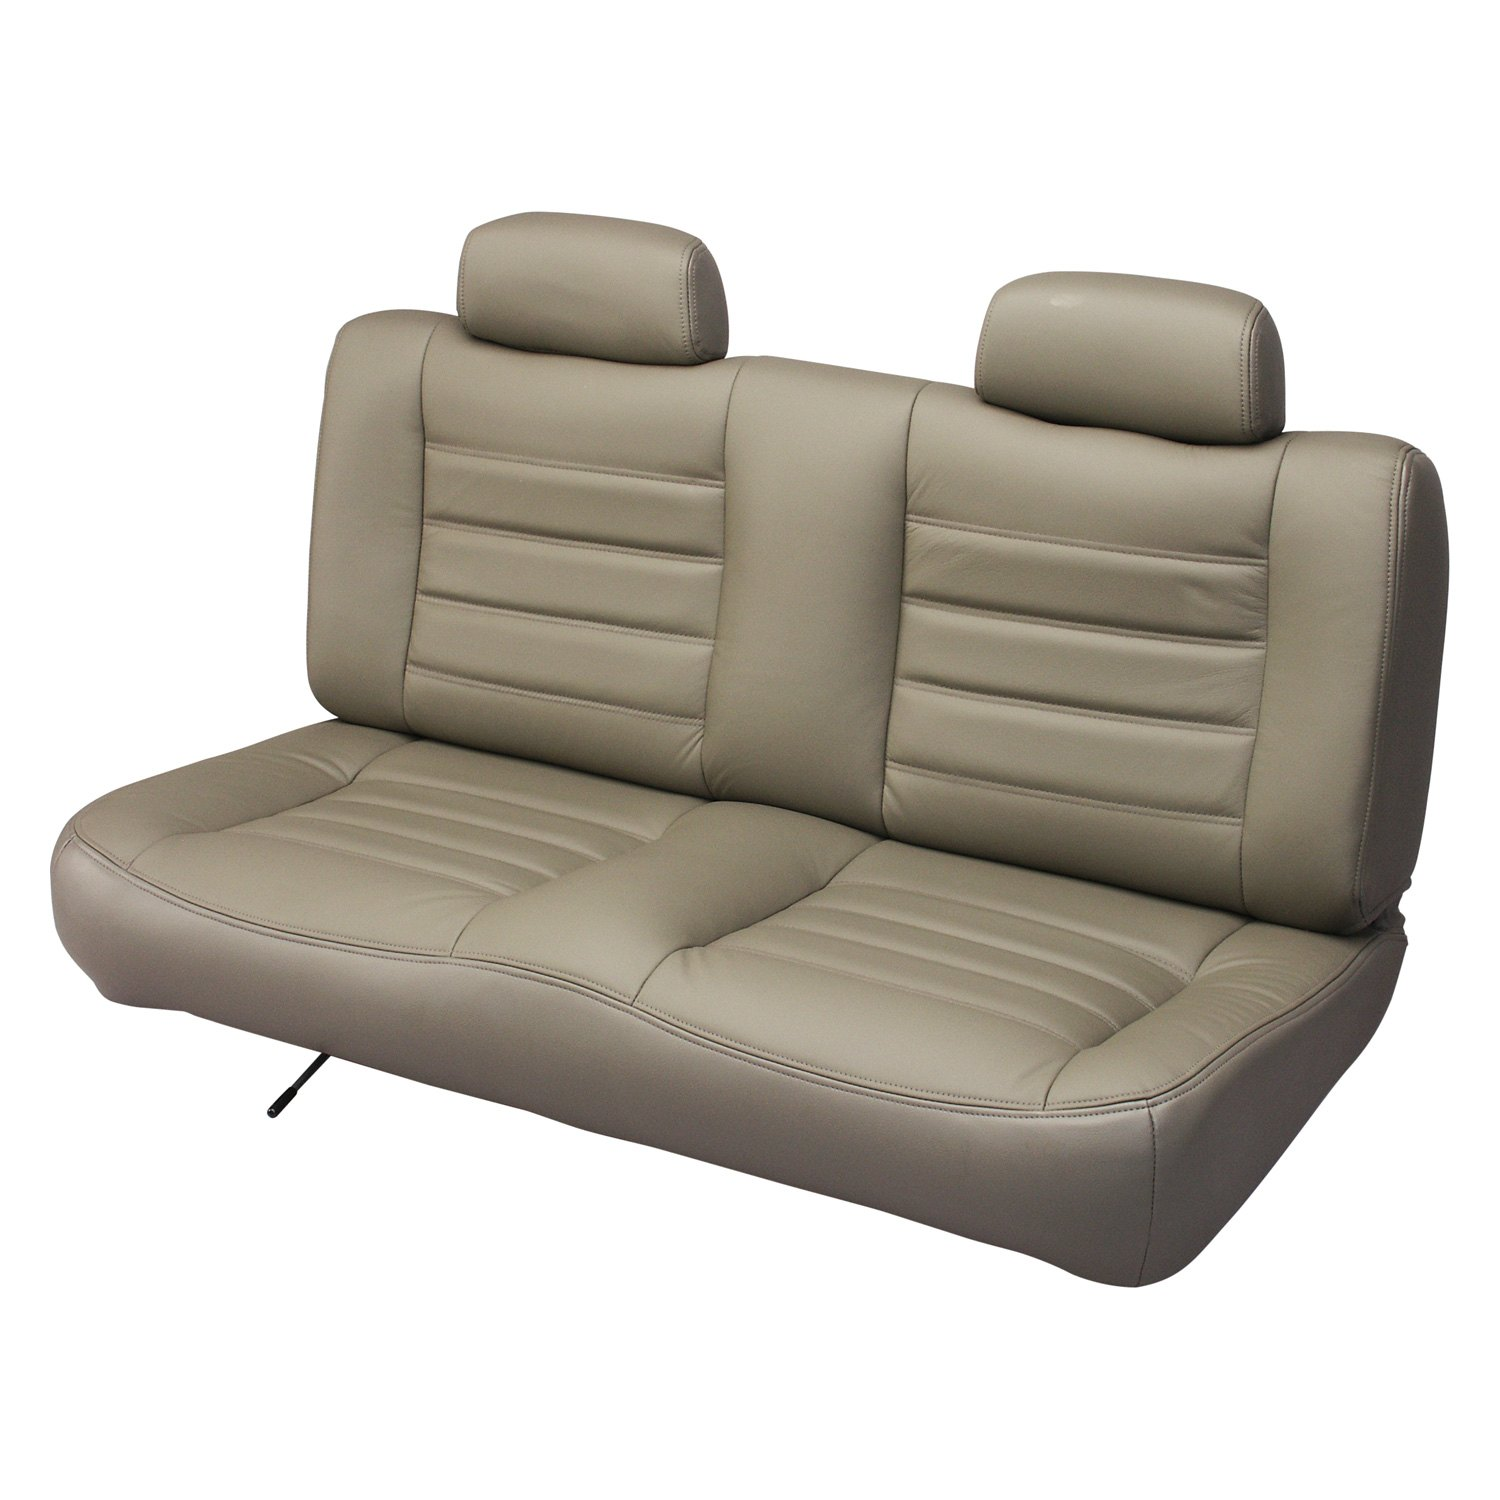 Cerullo 174 Hummer H2 2003 3rd Row Seat